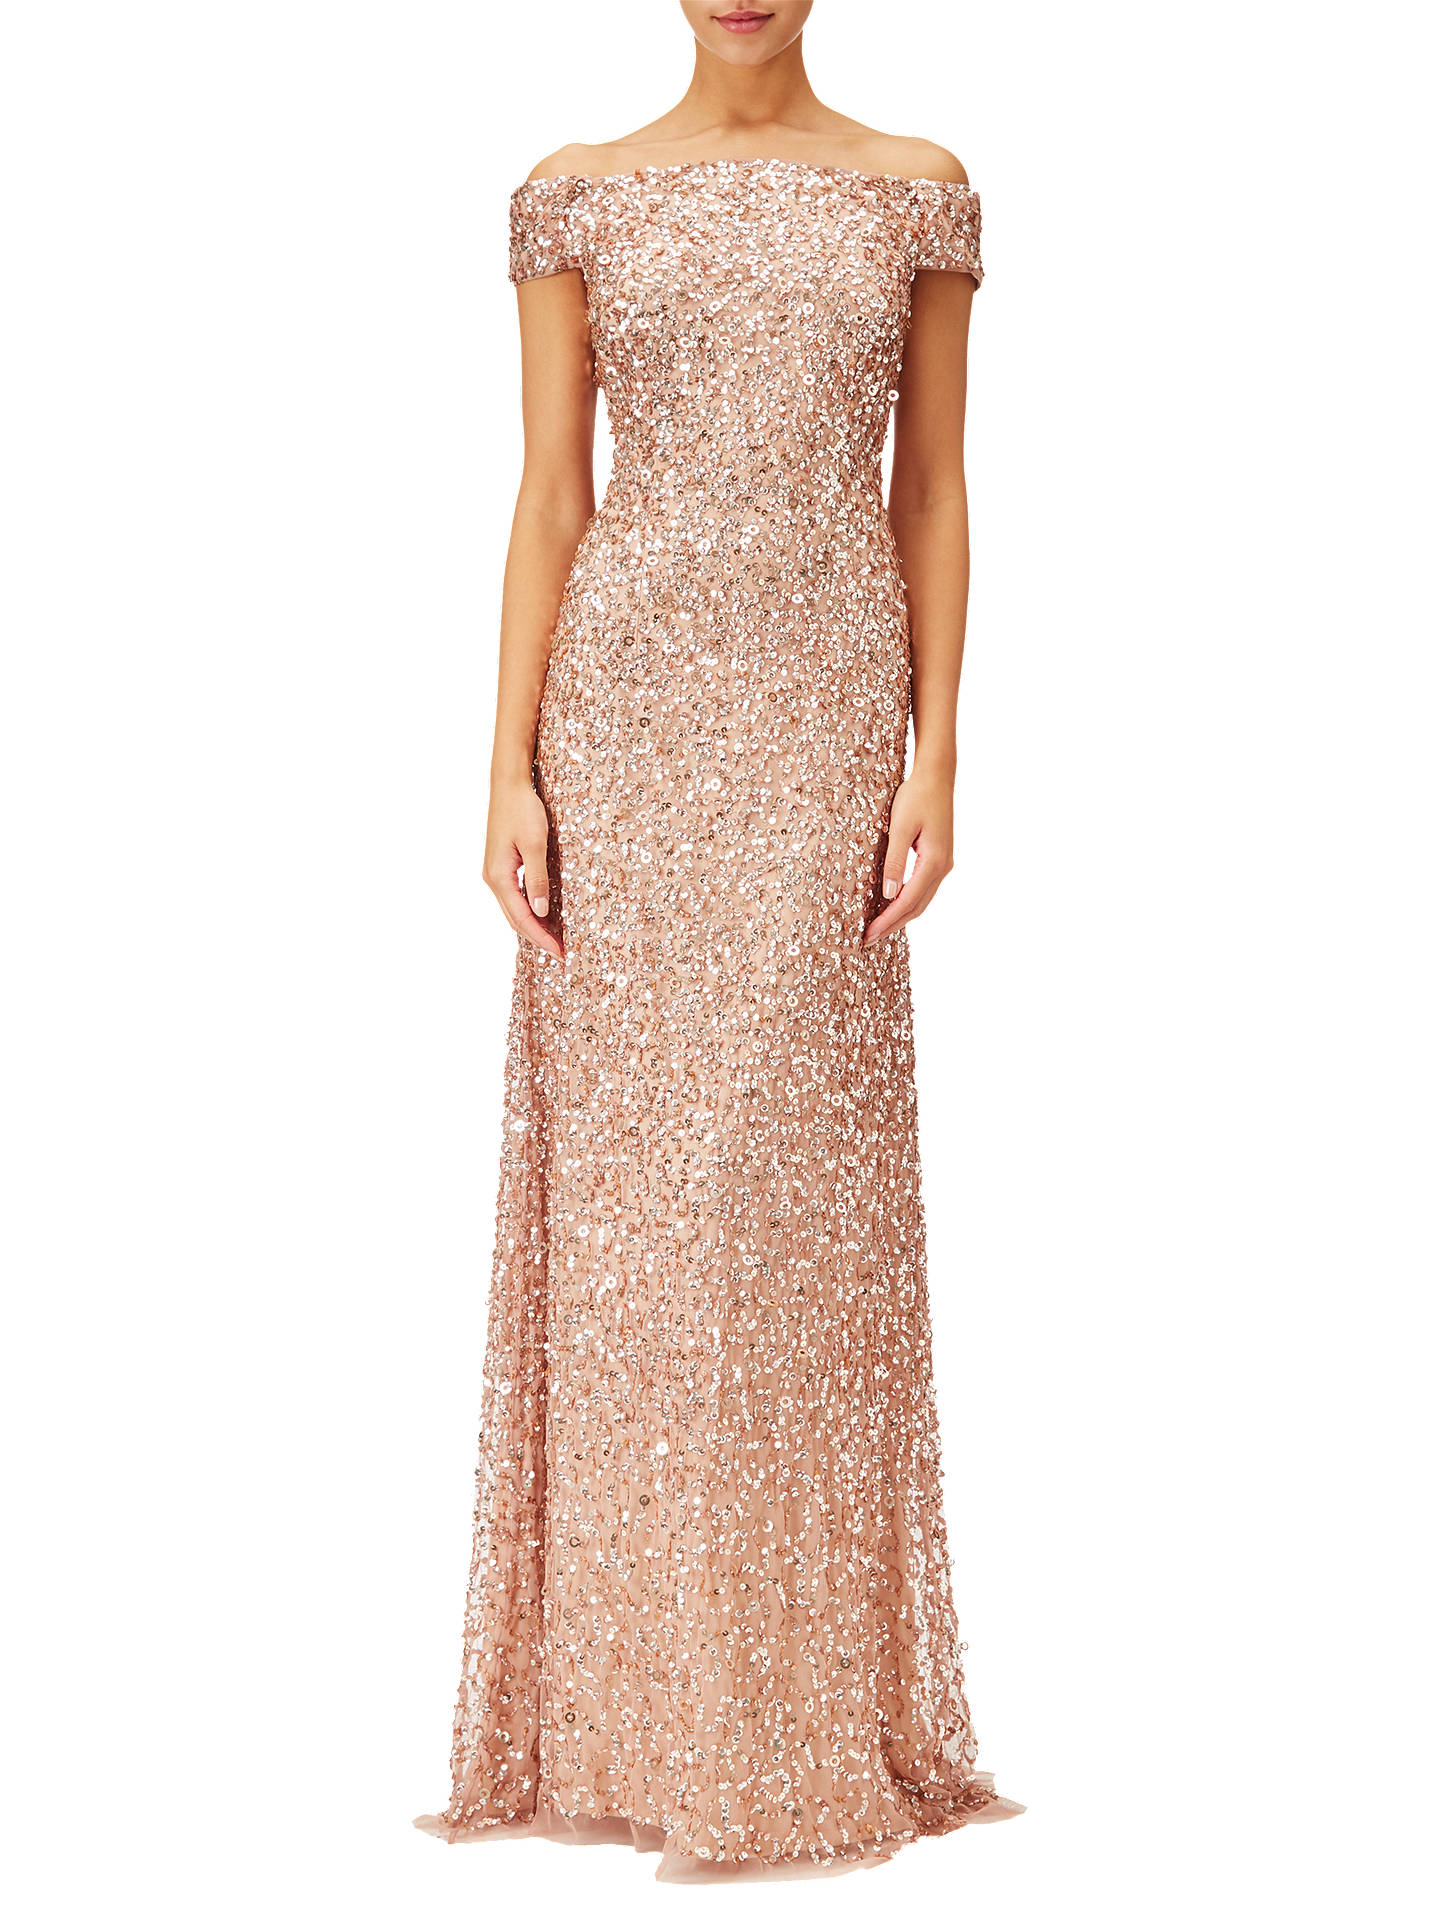 2db6481ffad Buy Adrianna Papell Off Shoulder Beaded Gown